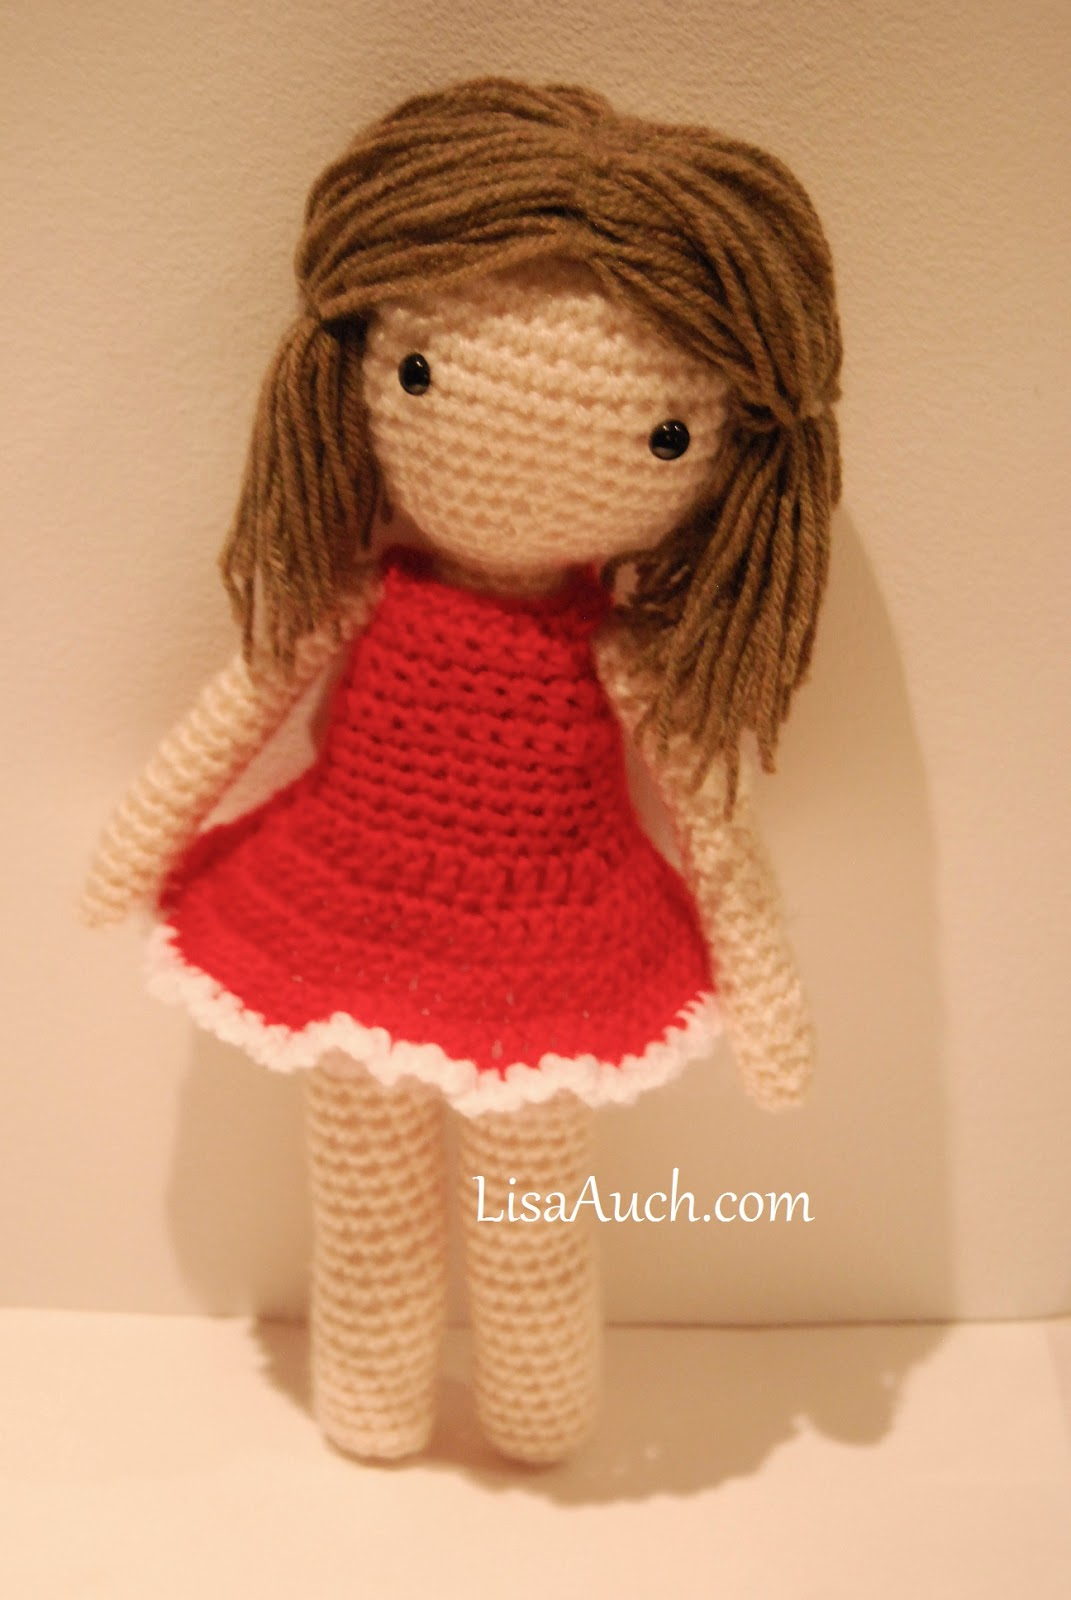 Little Crochet Red Dress Pattern For Your Basic Amigurumi